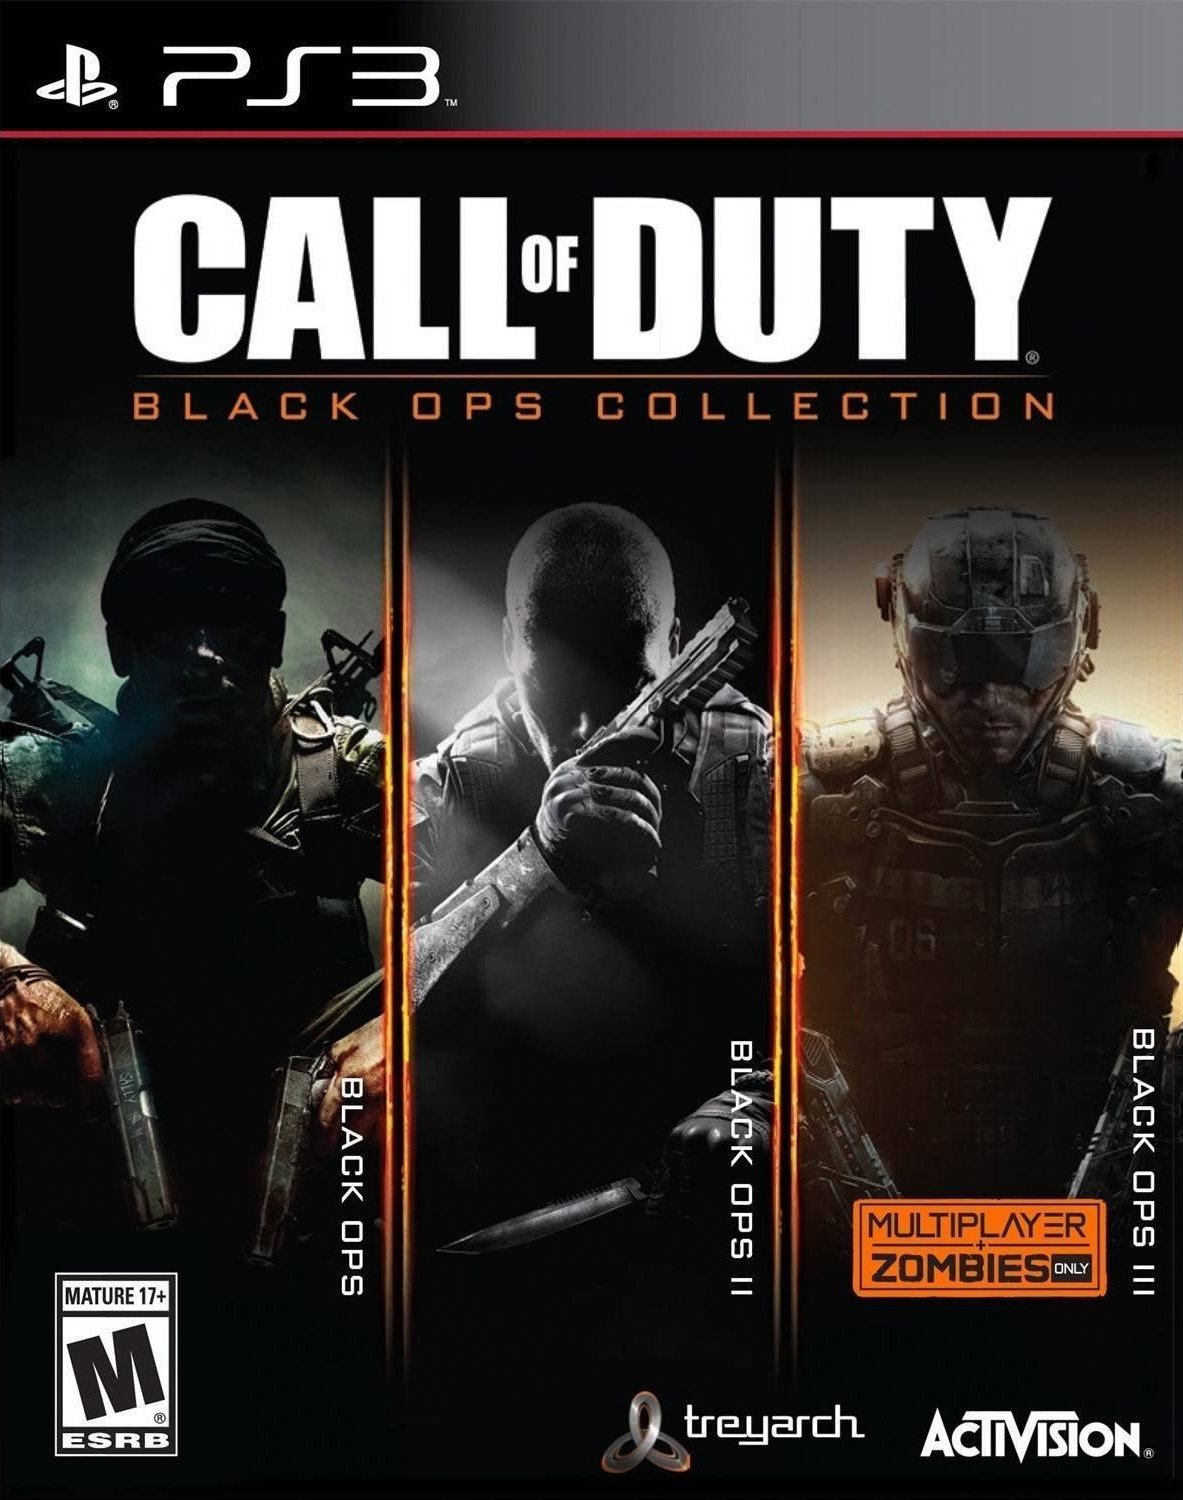 Call of Duty: Black Ops Collection, la trilogía de Treyarch en un recopilatorio